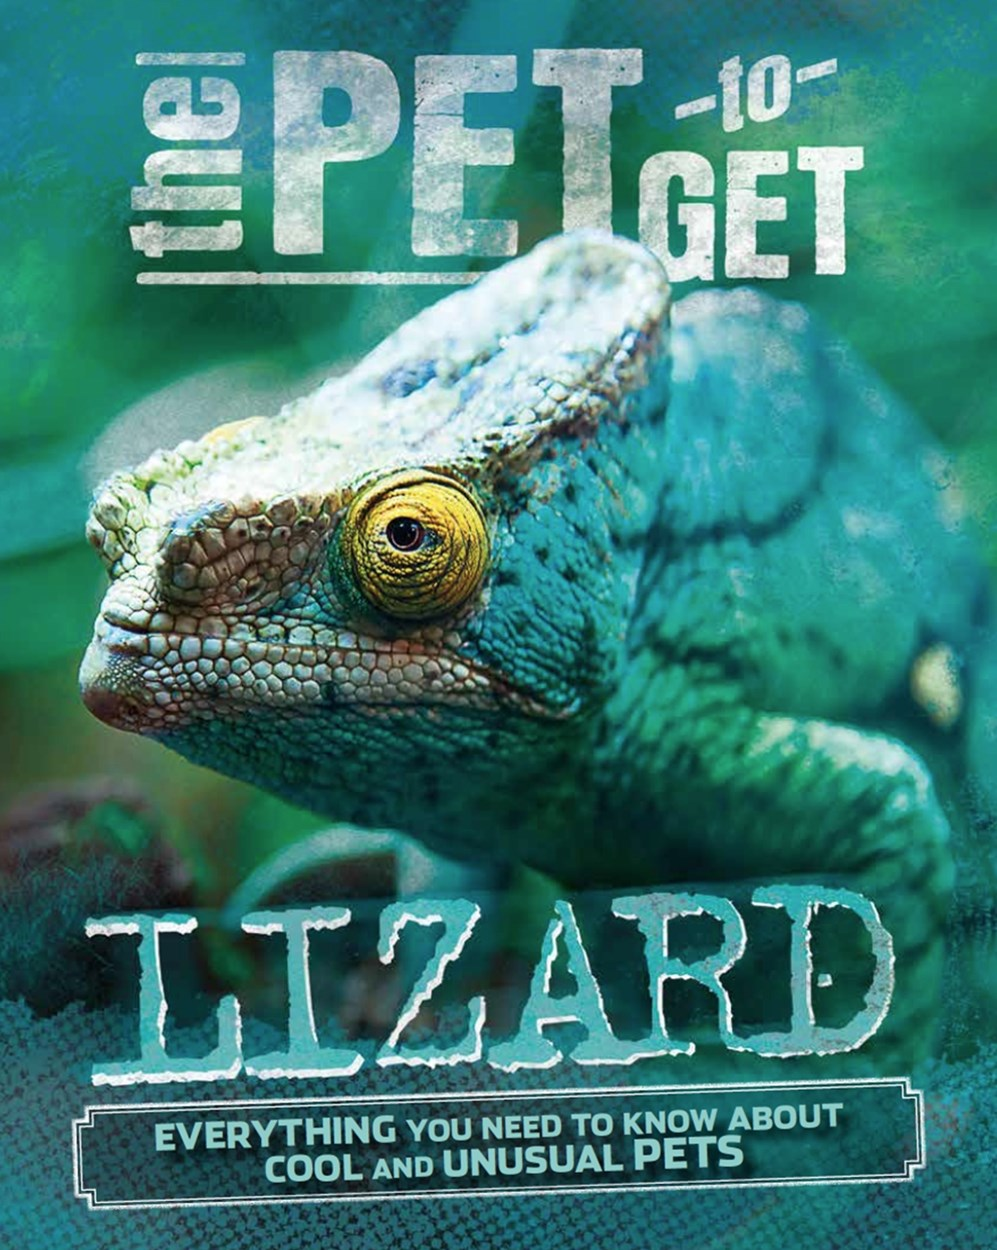 The Pet to Get: Lizard